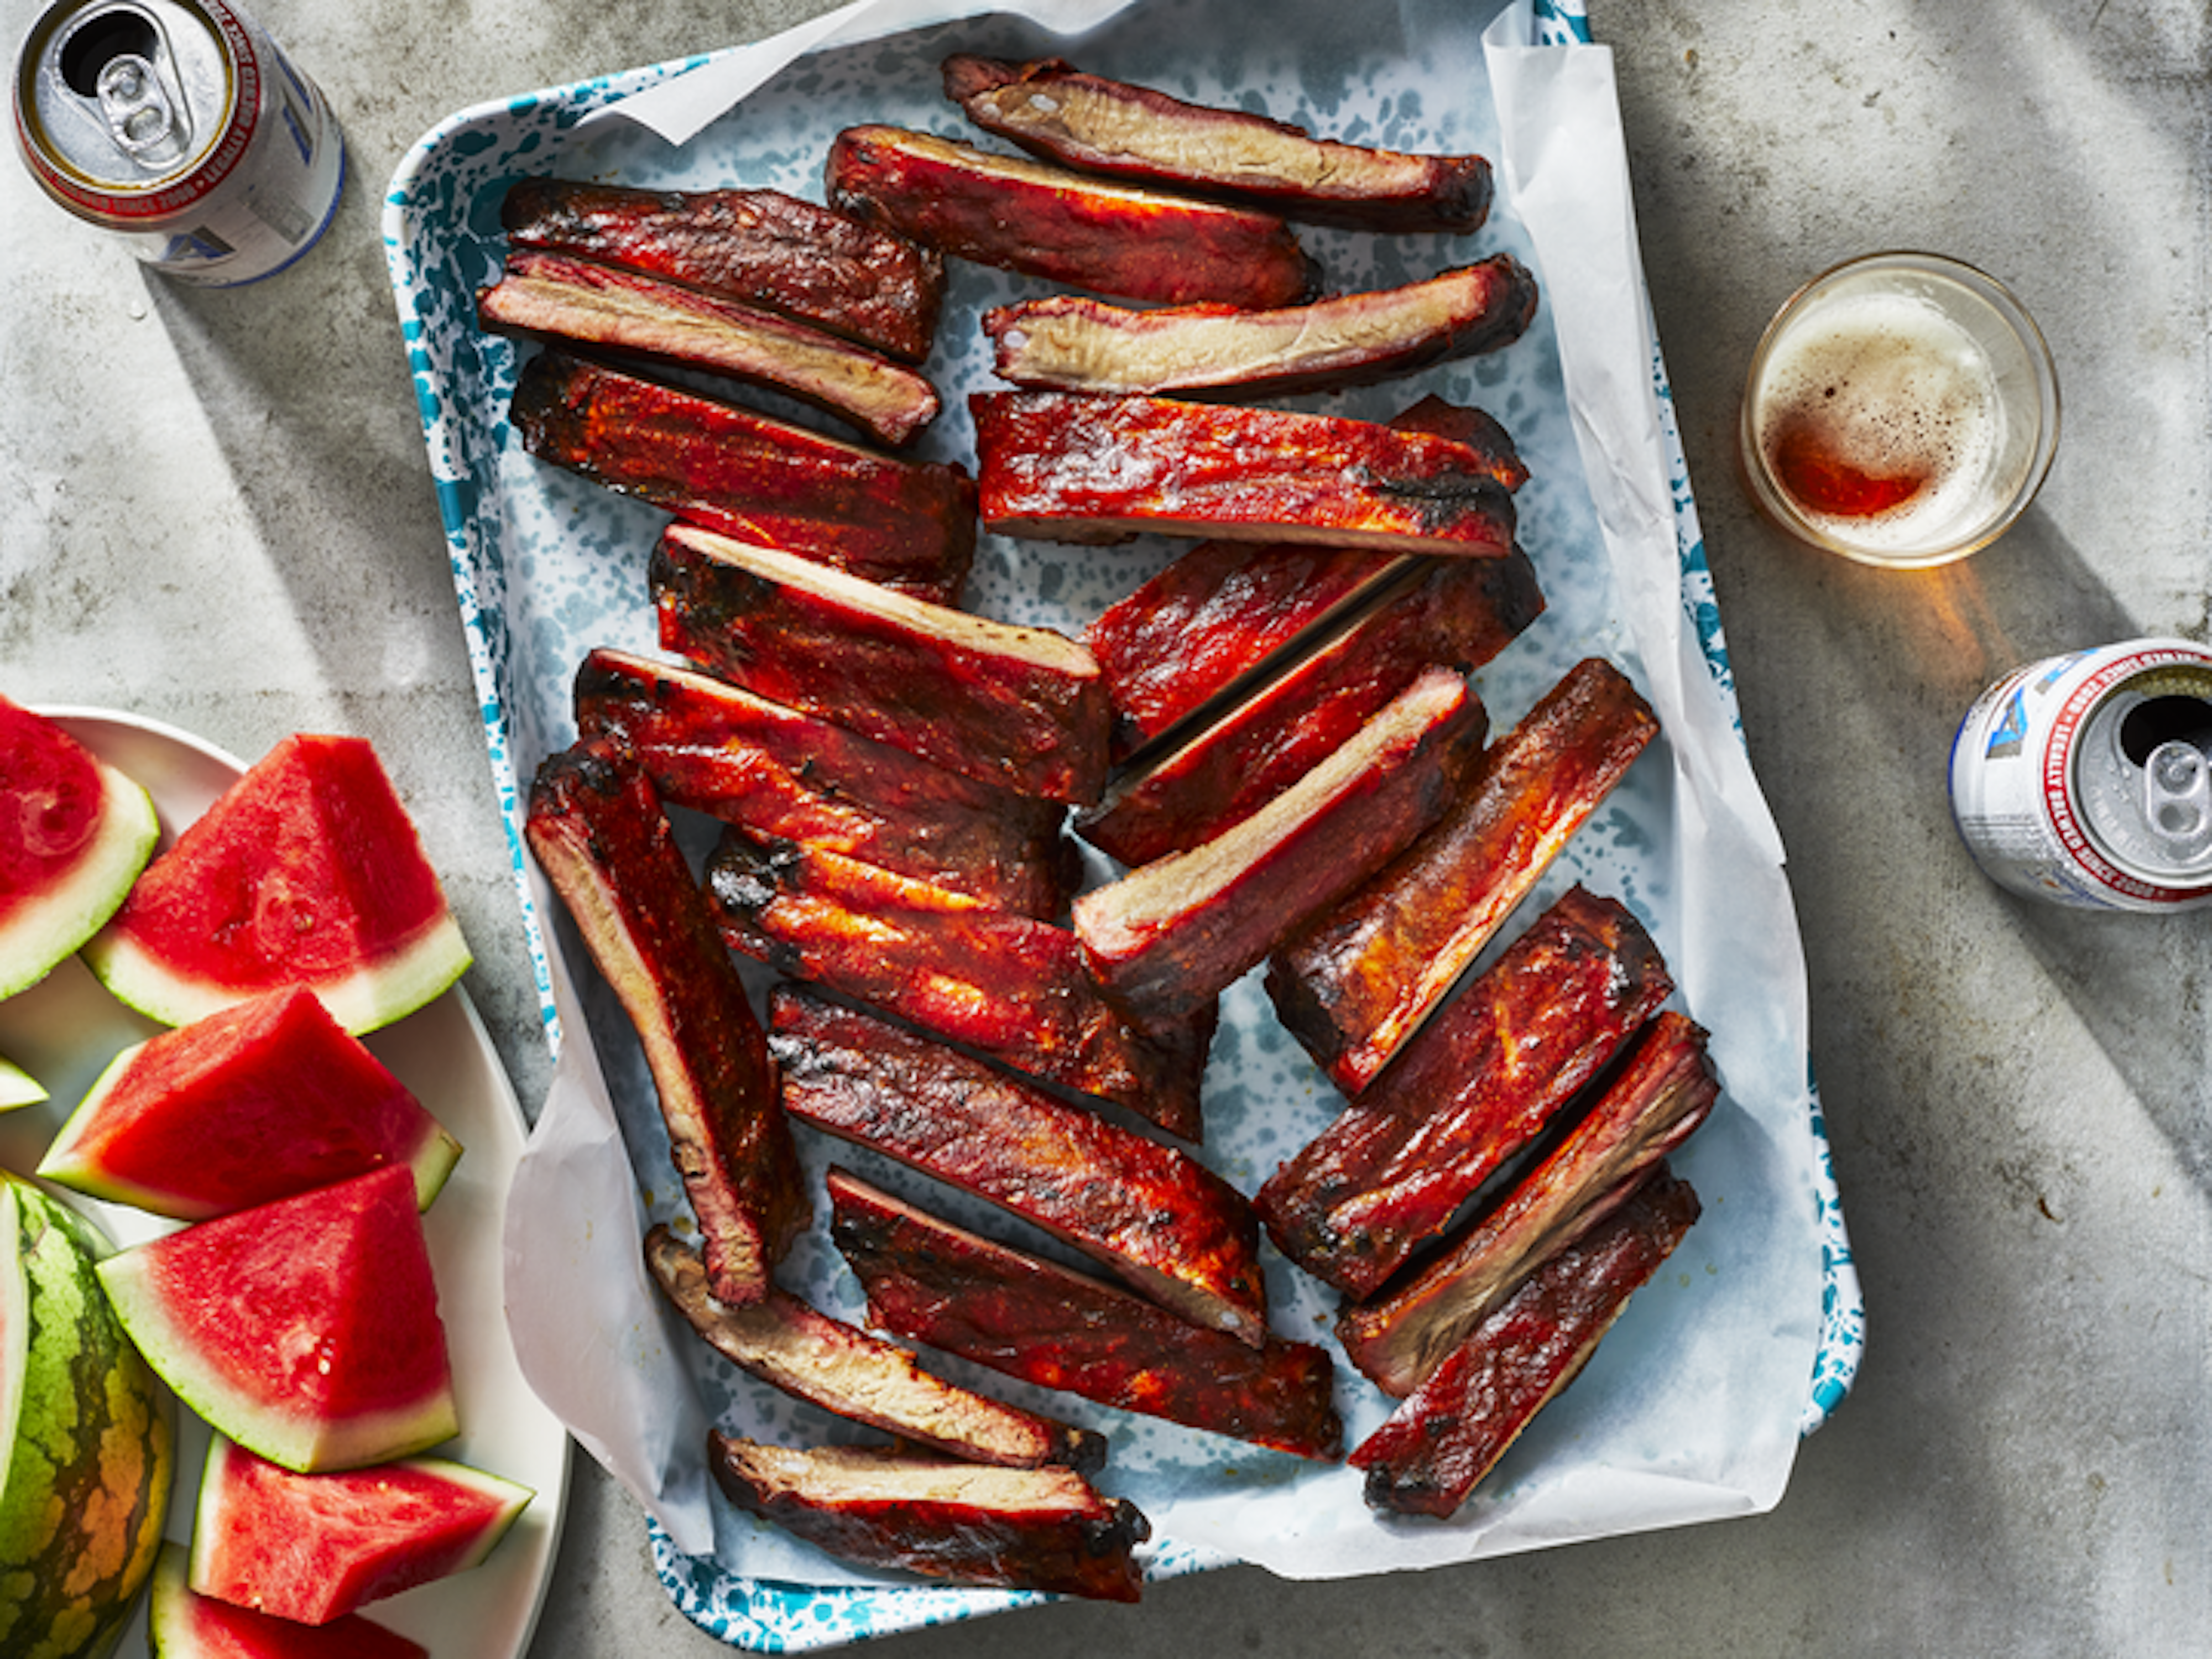 mr - Pellet Grill Smoked Pork Ribs Image